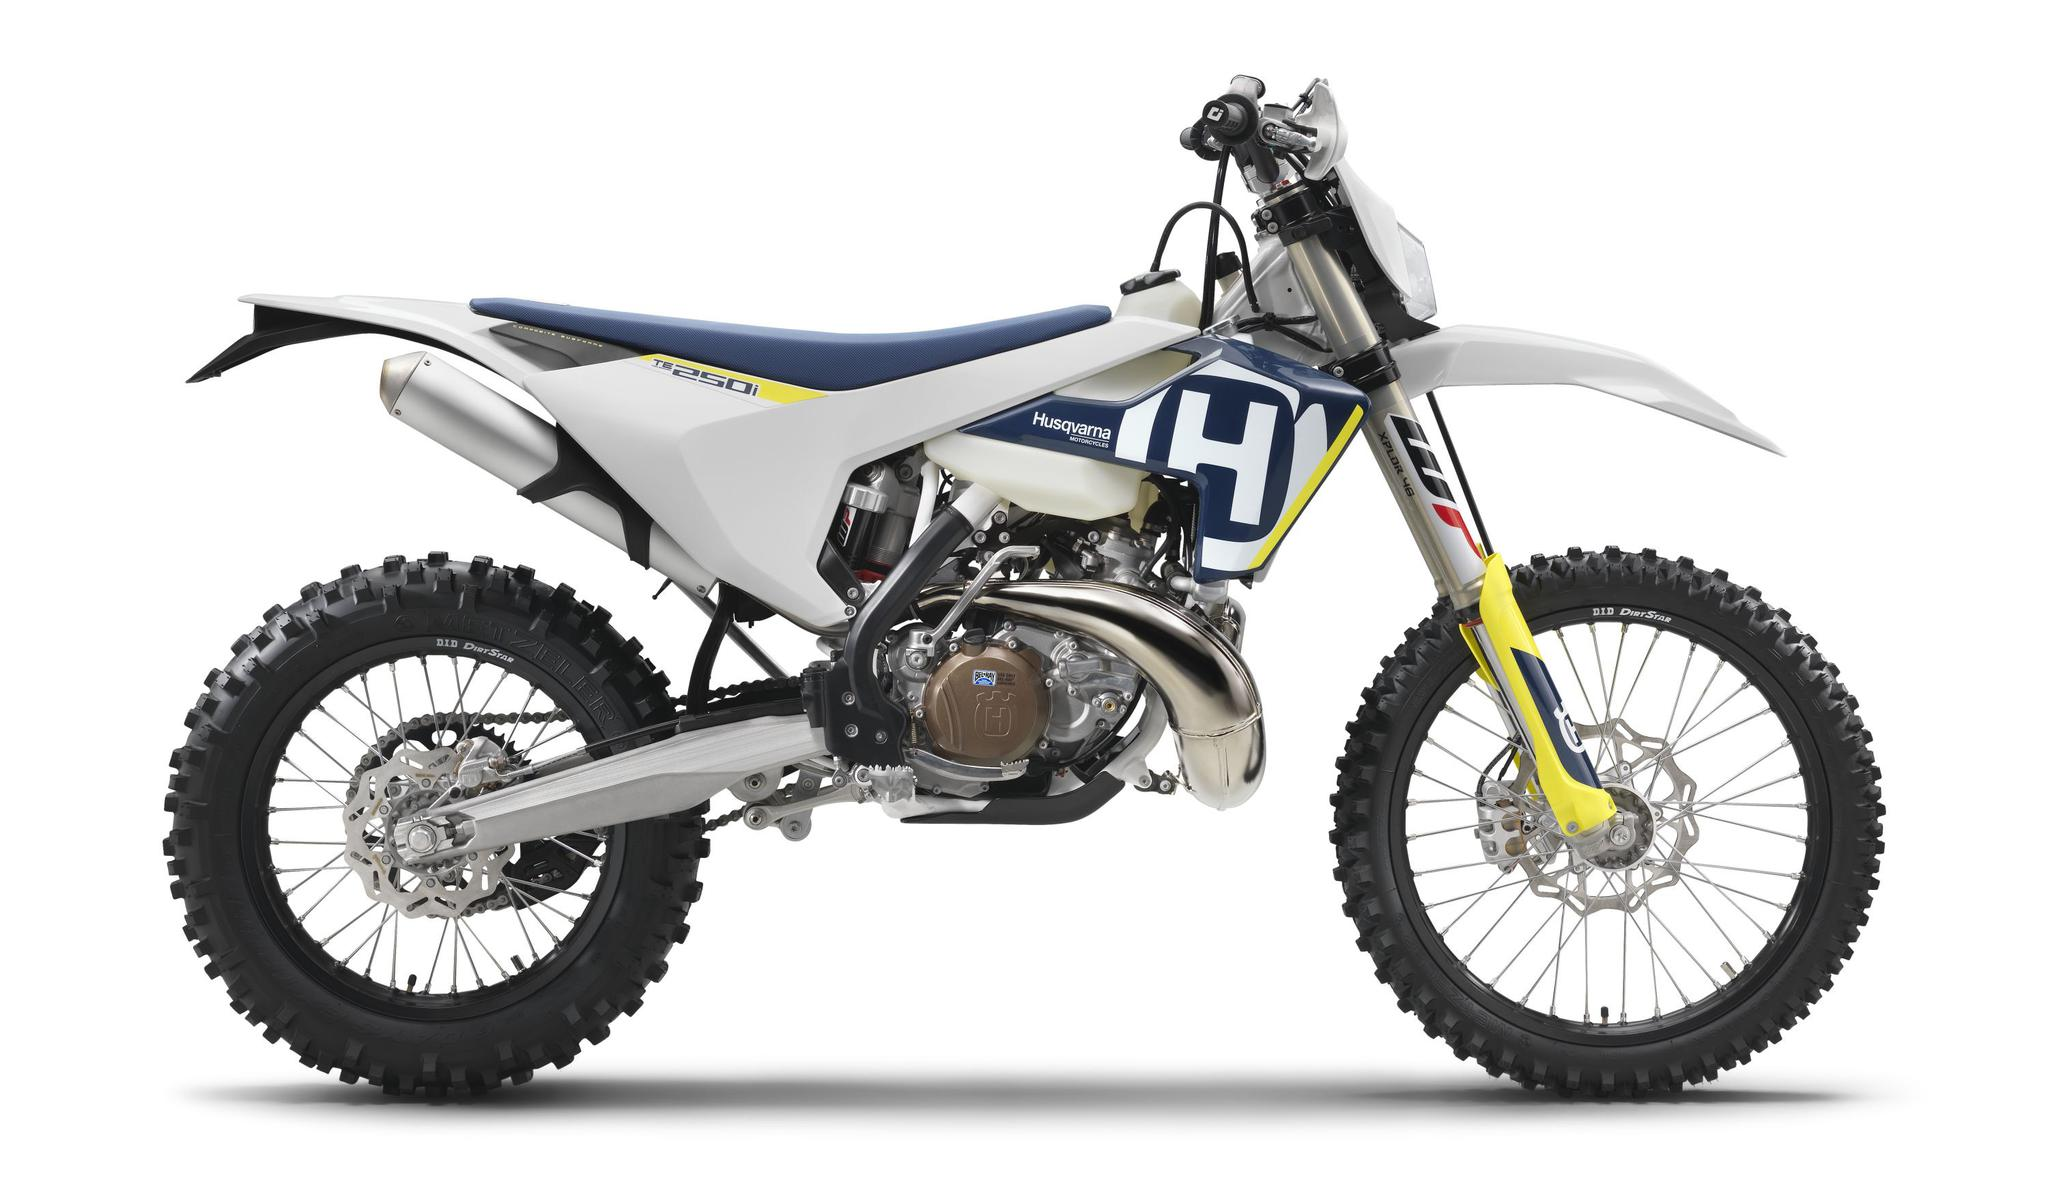 Is This the Future of Dirt Bikes? Husqvarna's Fuel-Injected 2-Stroke |  Scribd